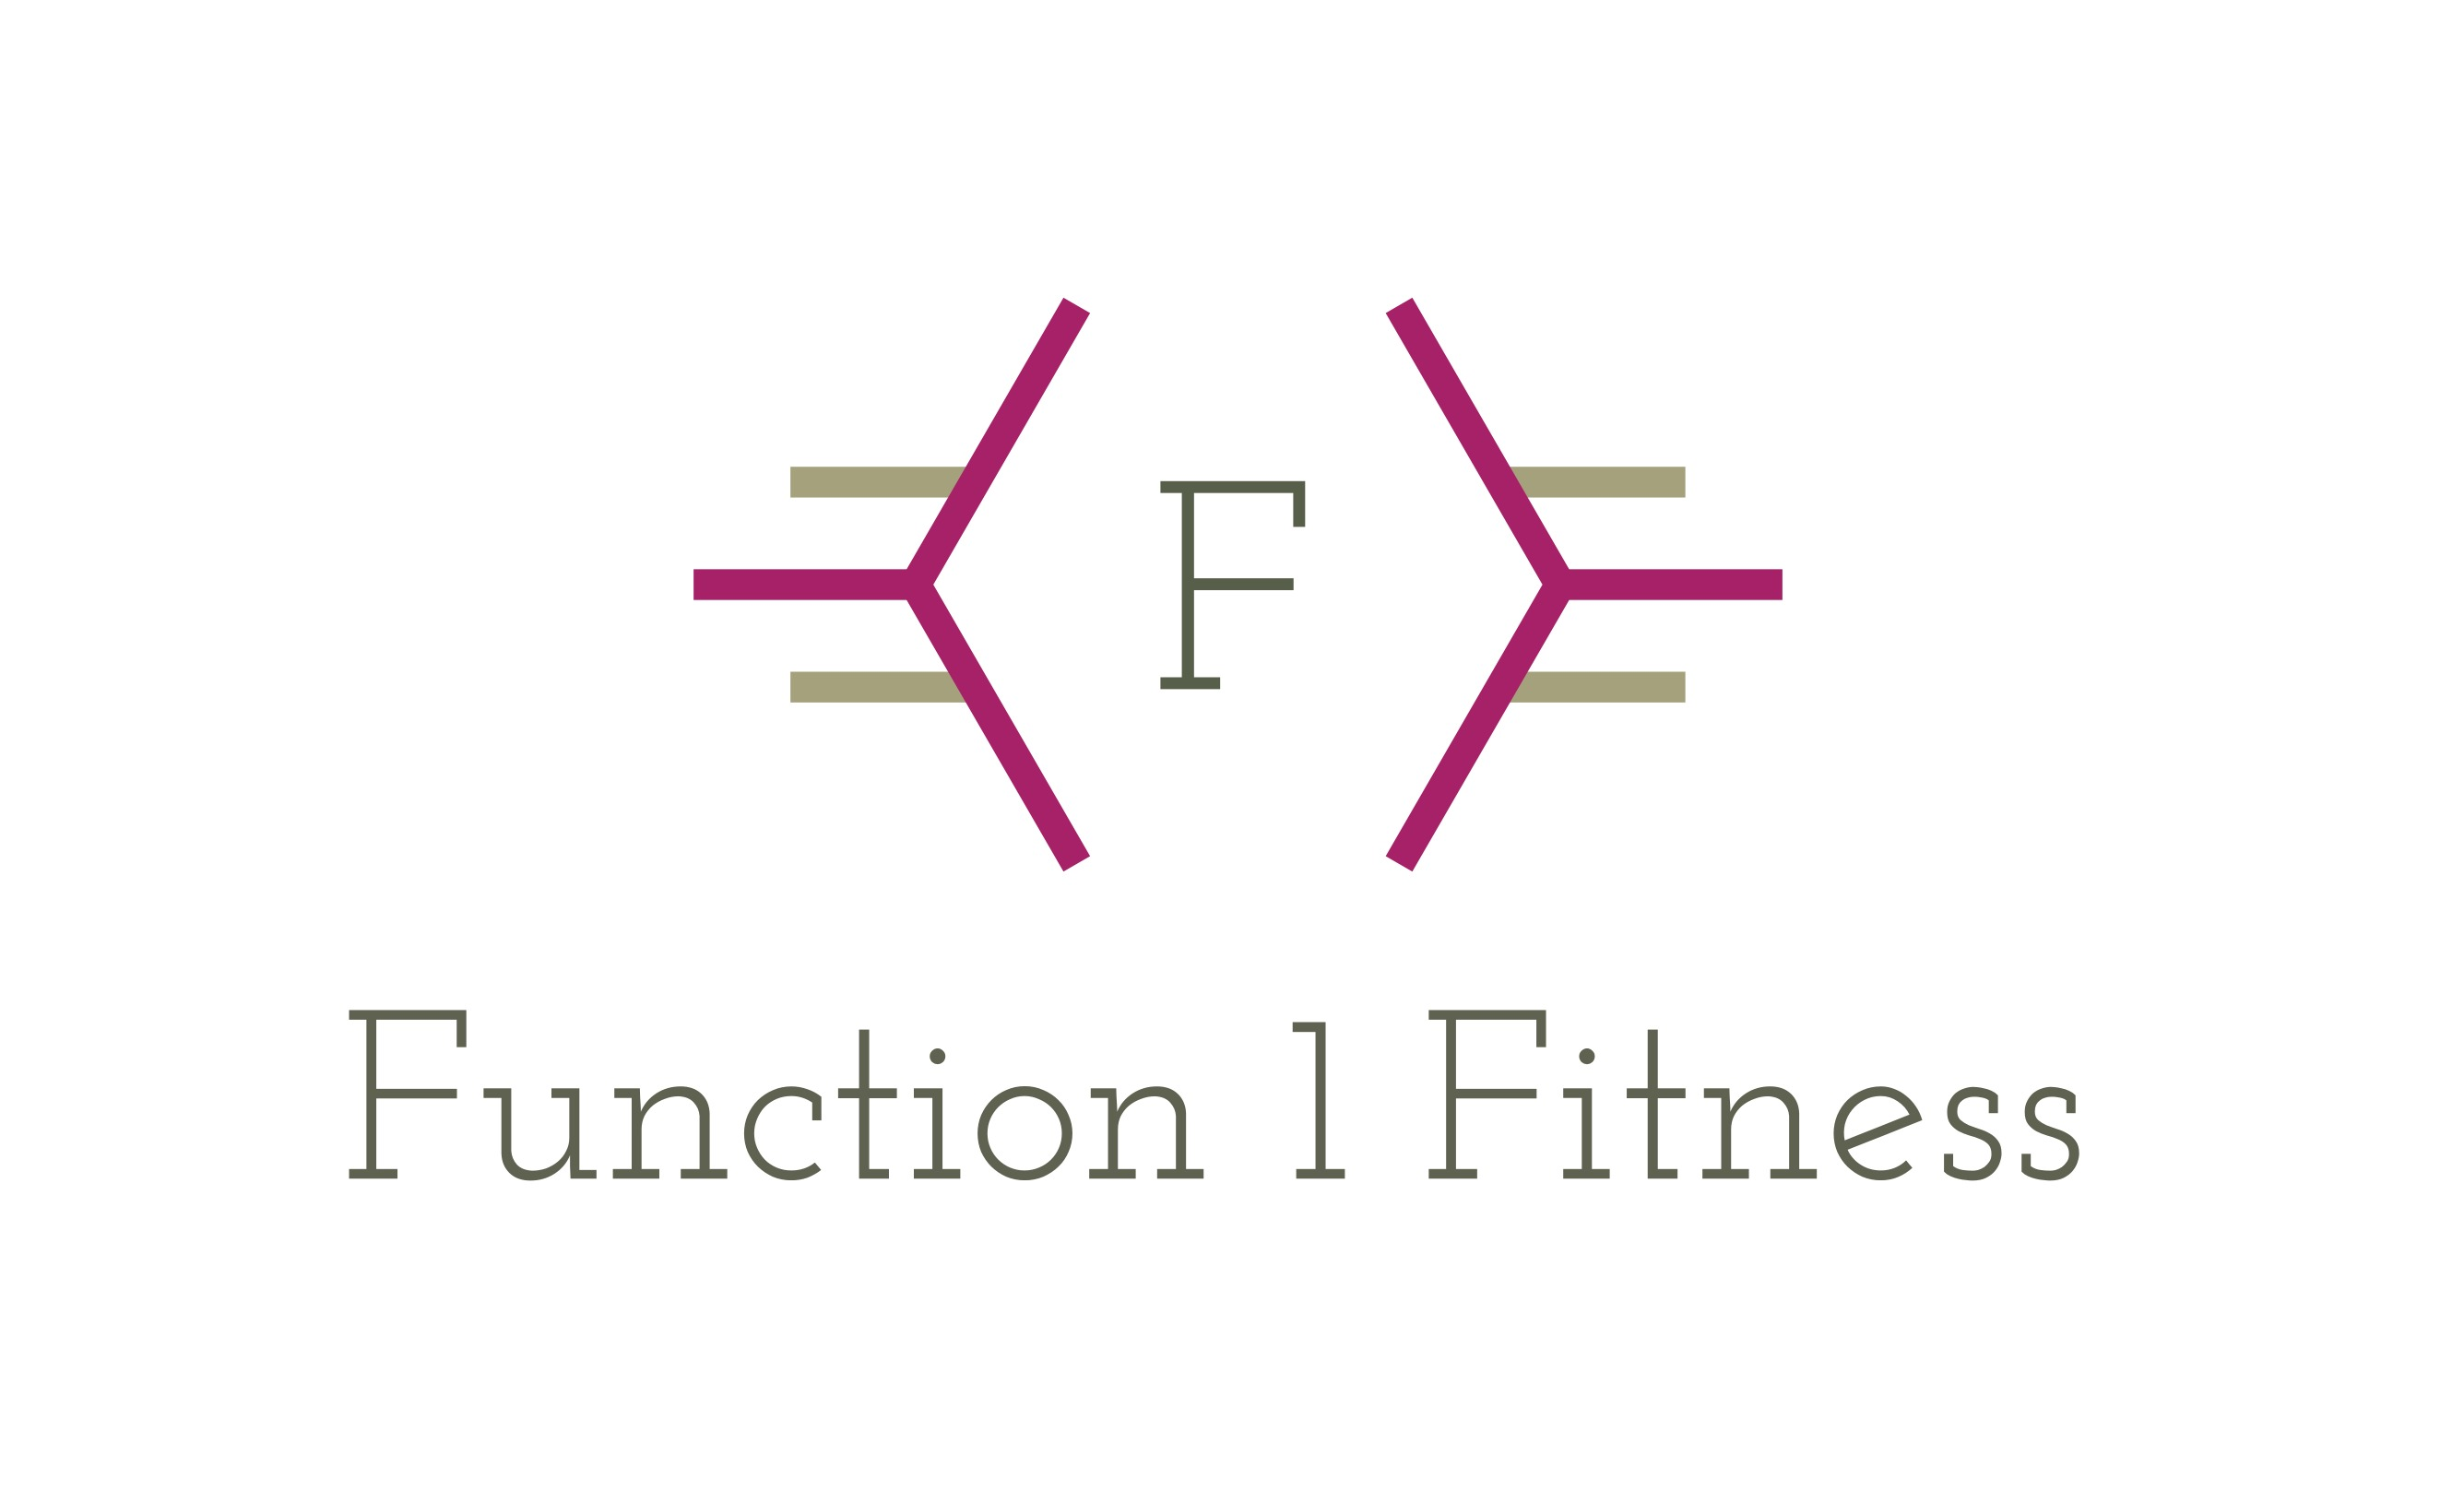 Function 1 Fitness